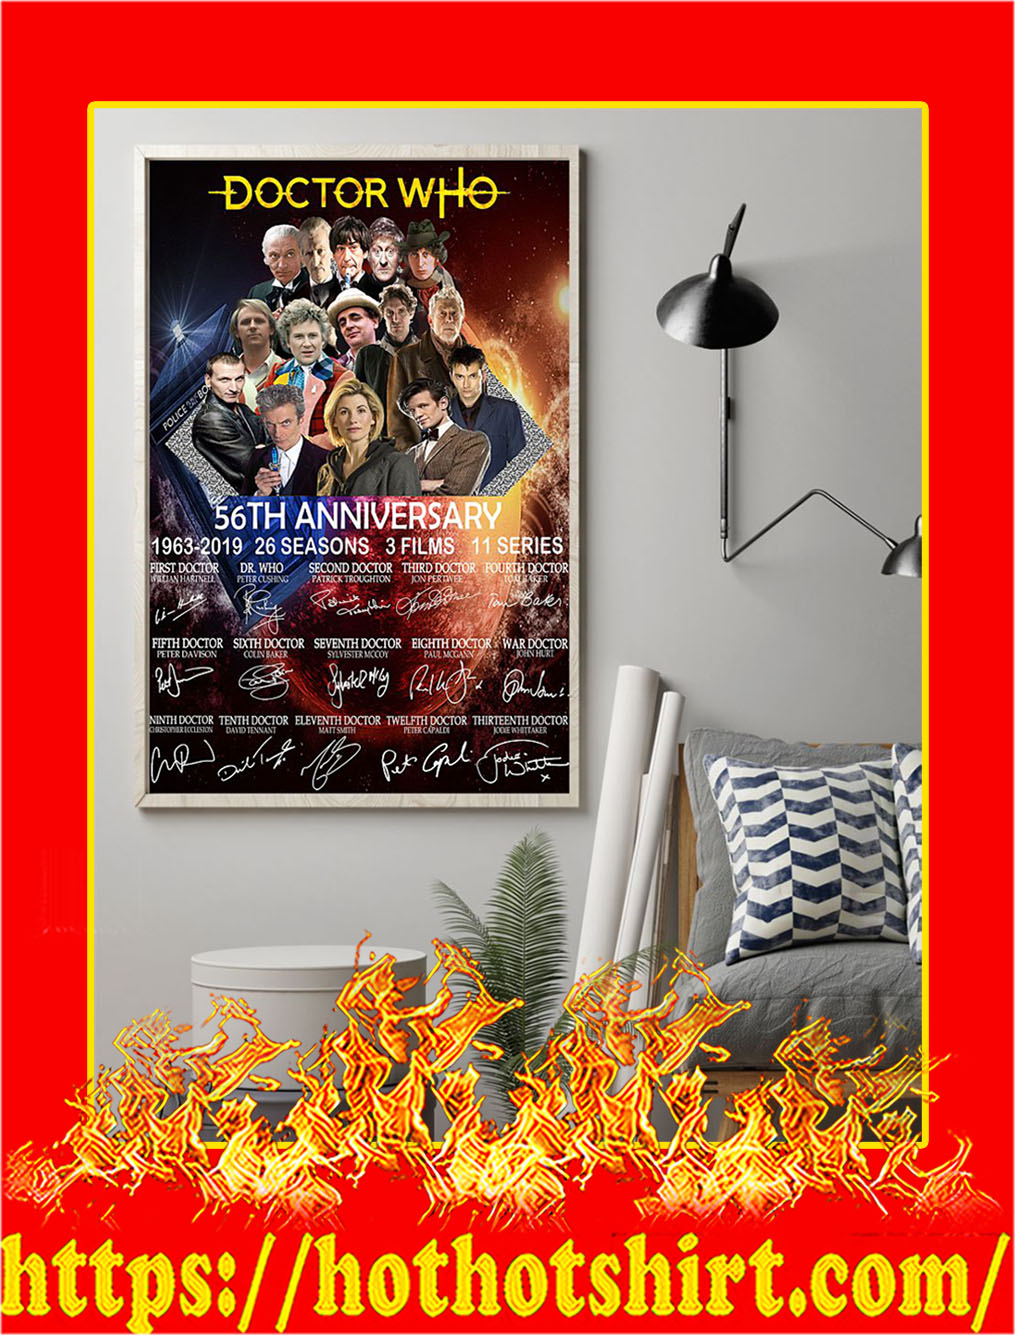 Doctor Who 56th Anniversary Poster- A4